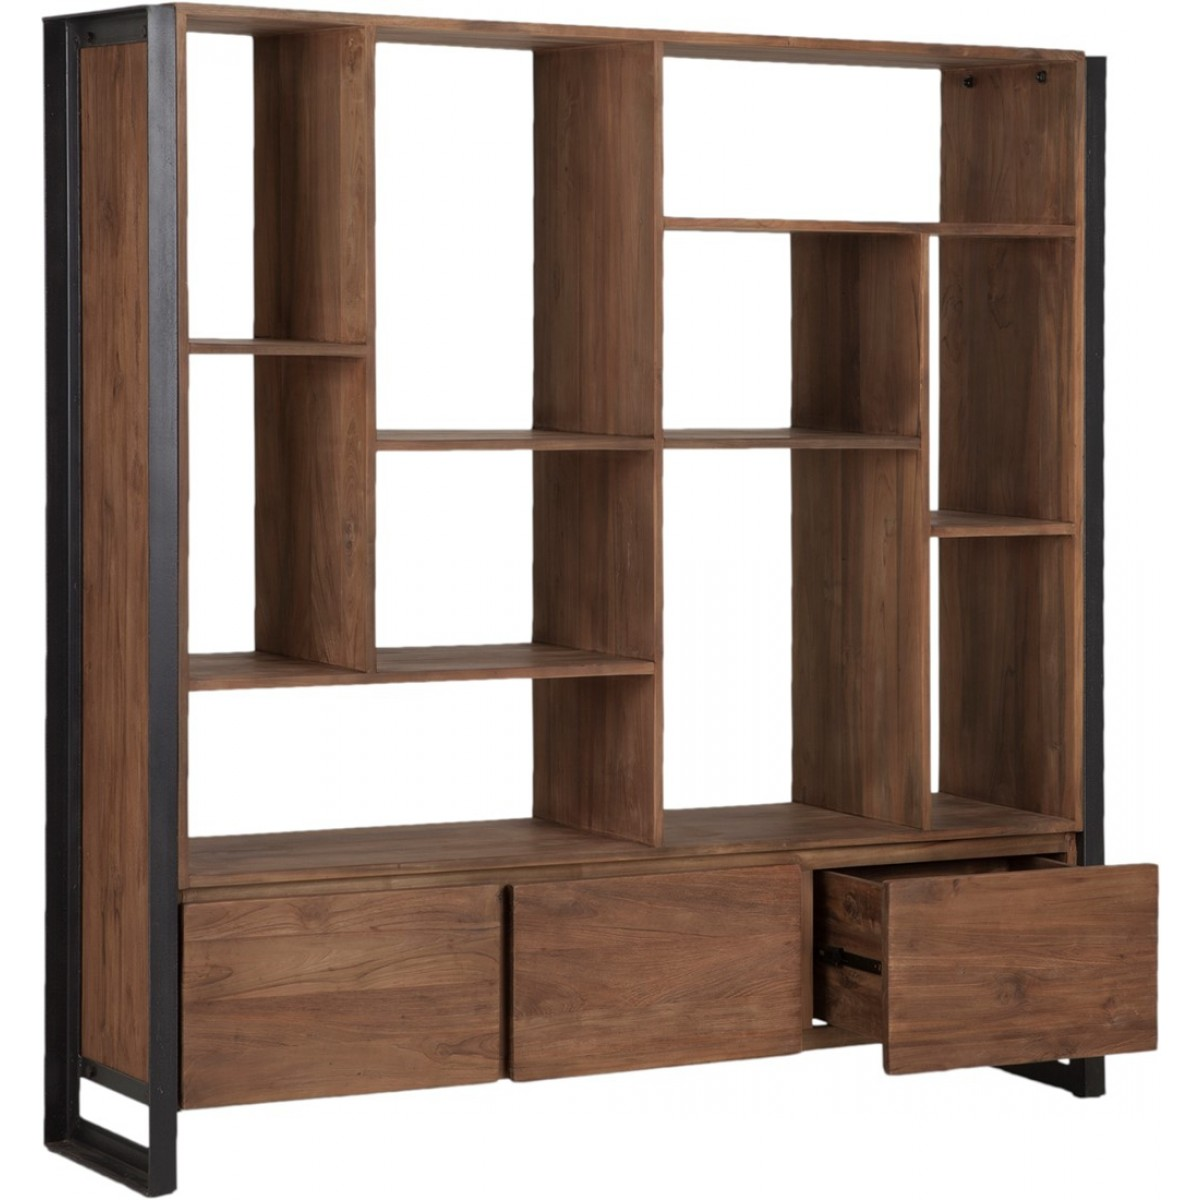 regal industrie b cherregal metall holz breite 150 cm. Black Bedroom Furniture Sets. Home Design Ideas